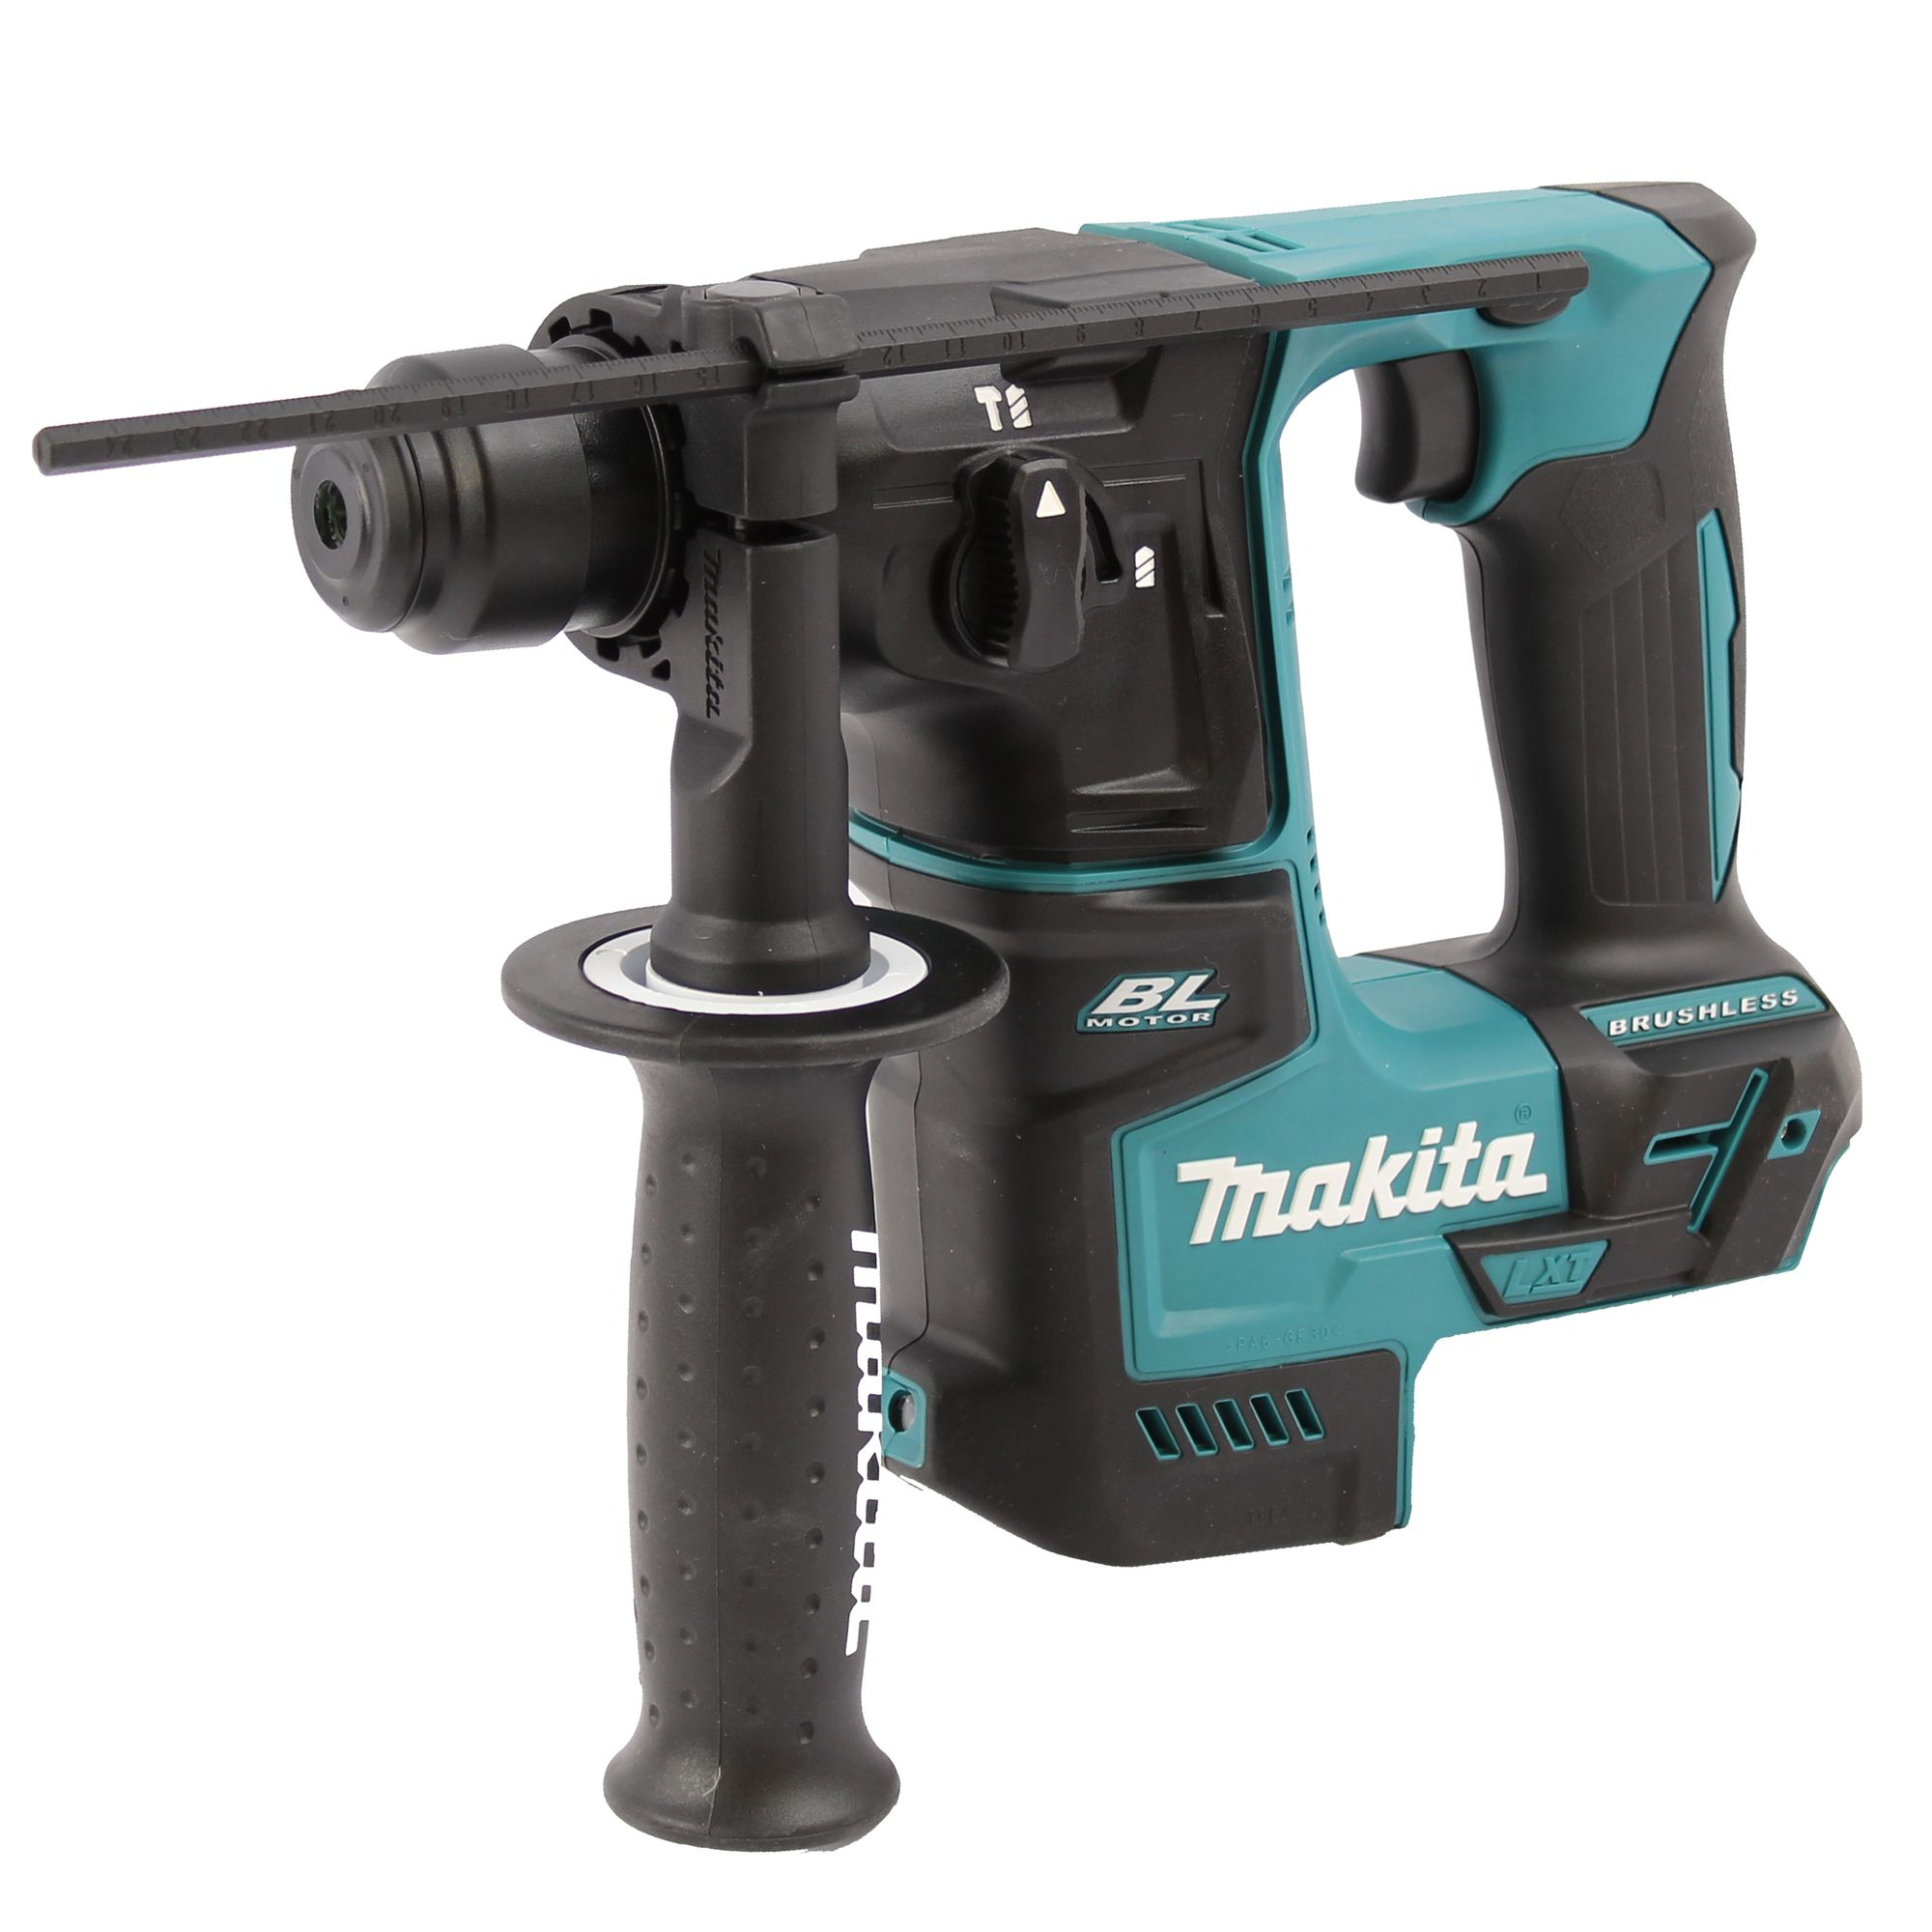 makita akku bohrhammer 18v dhr171z im set ohne akku ohne. Black Bedroom Furniture Sets. Home Design Ideas